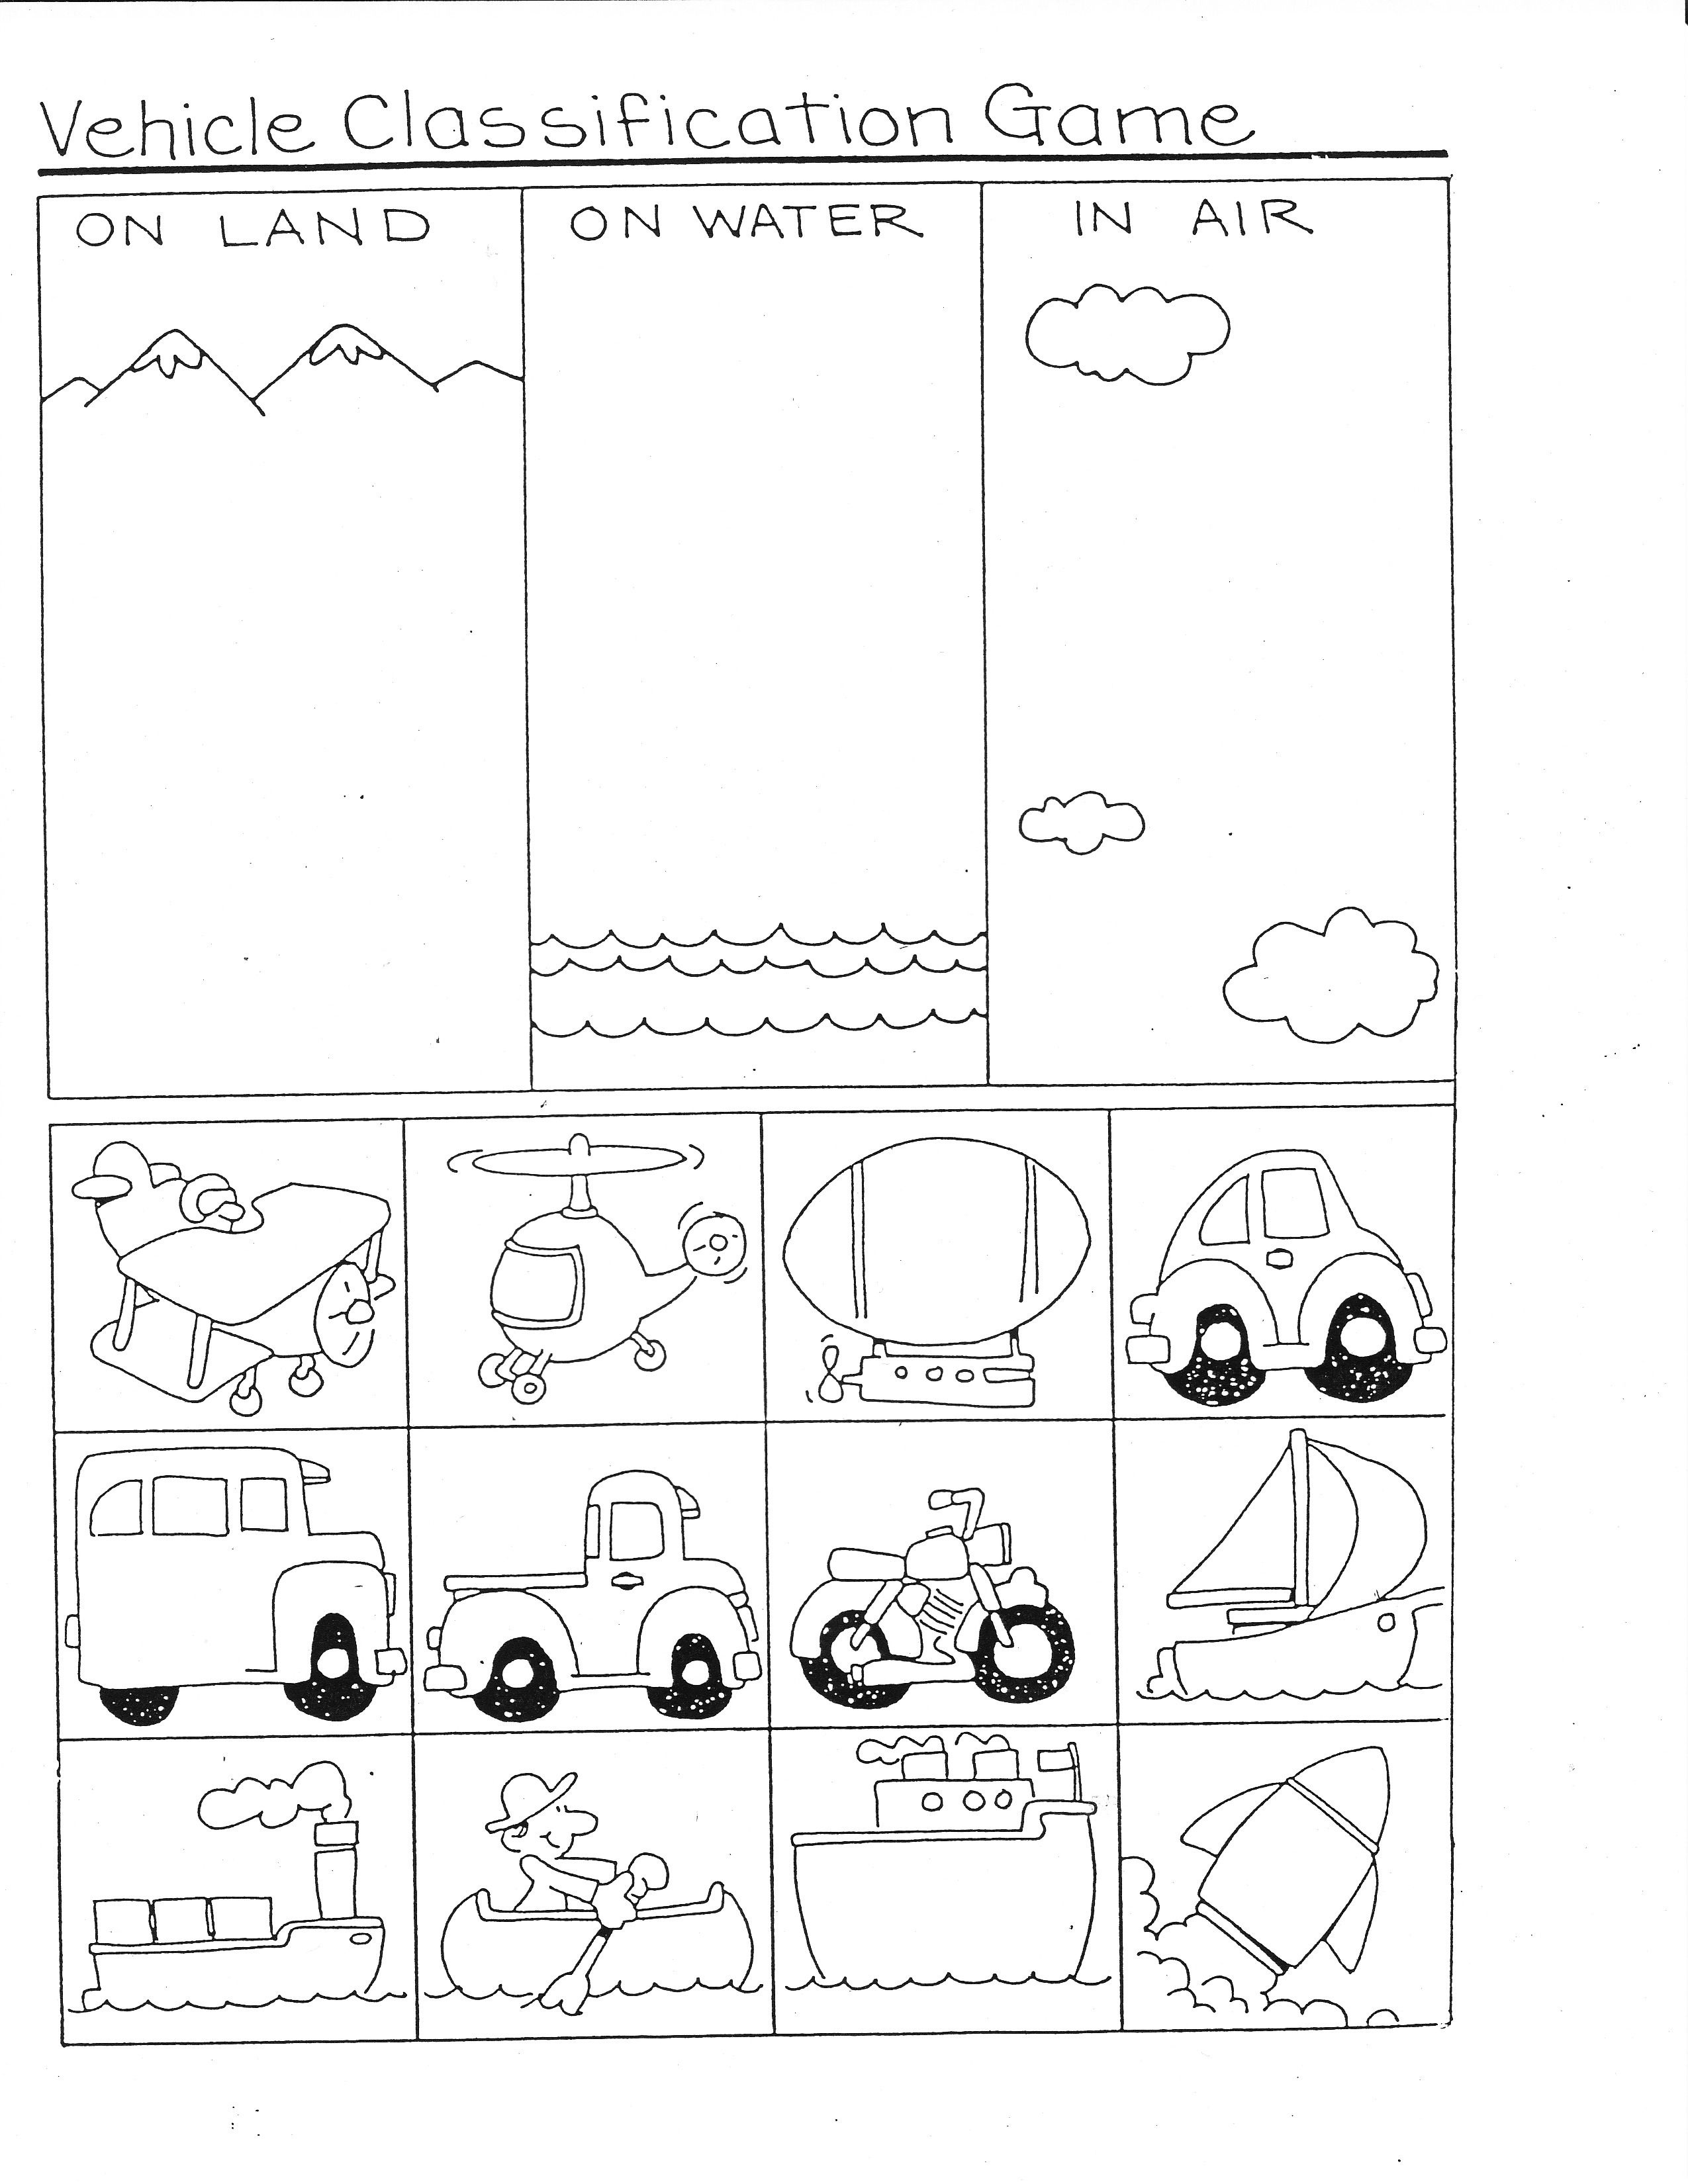 Transportation Ideas For Math | Ideas For School | Transportation - Free Printable Transportation Worksheets For Kids